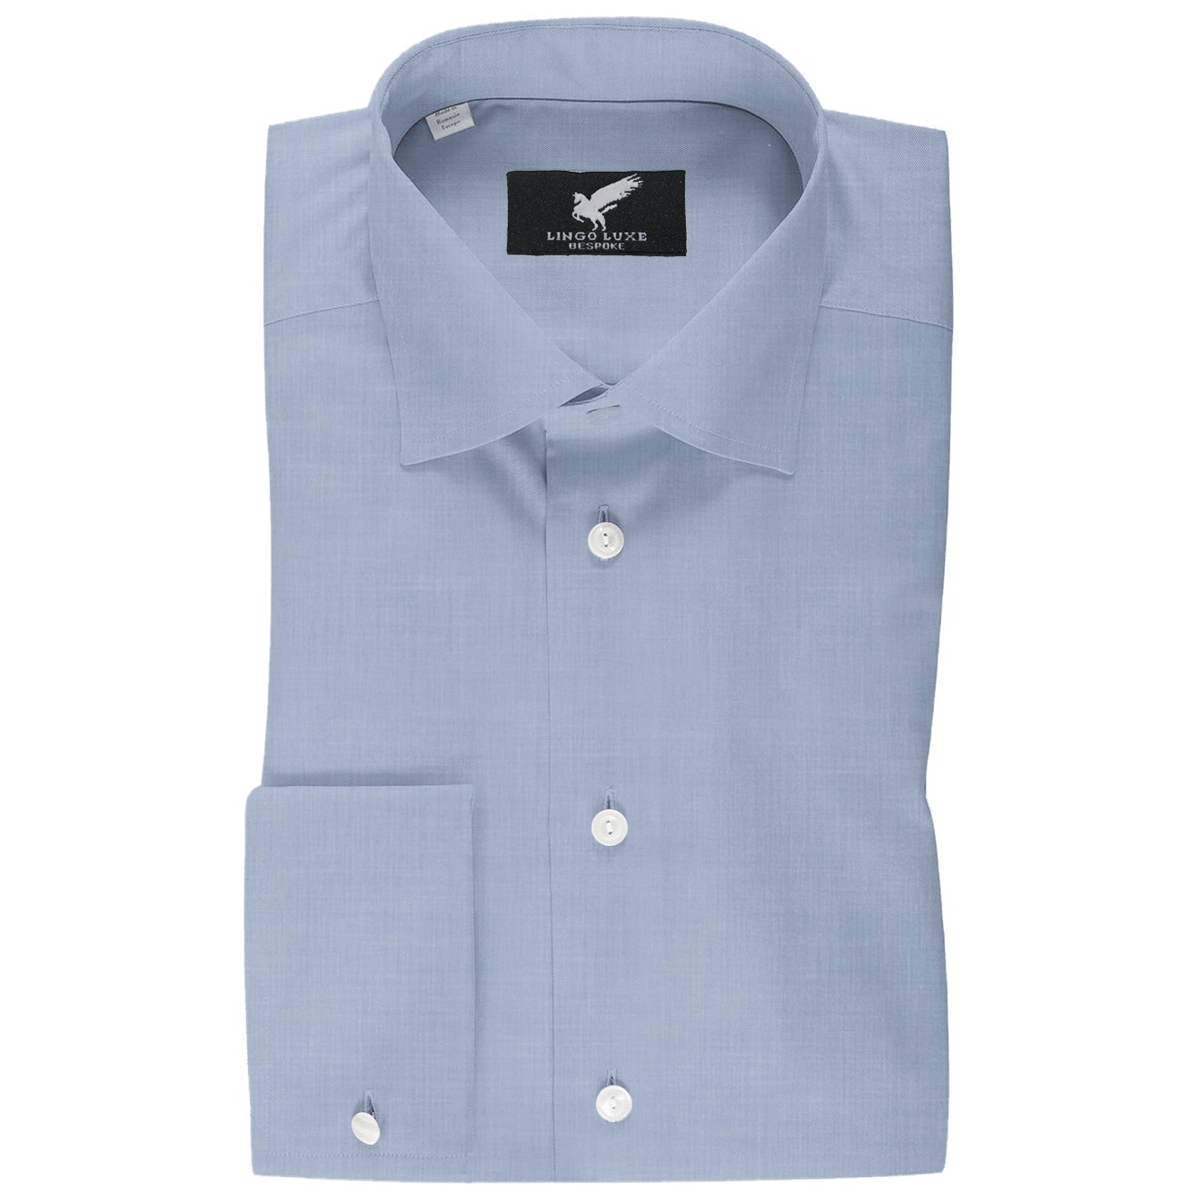 Men's Business Basics Shirt | Lingo Luxe Blue-Lingo Luxe Bespoke